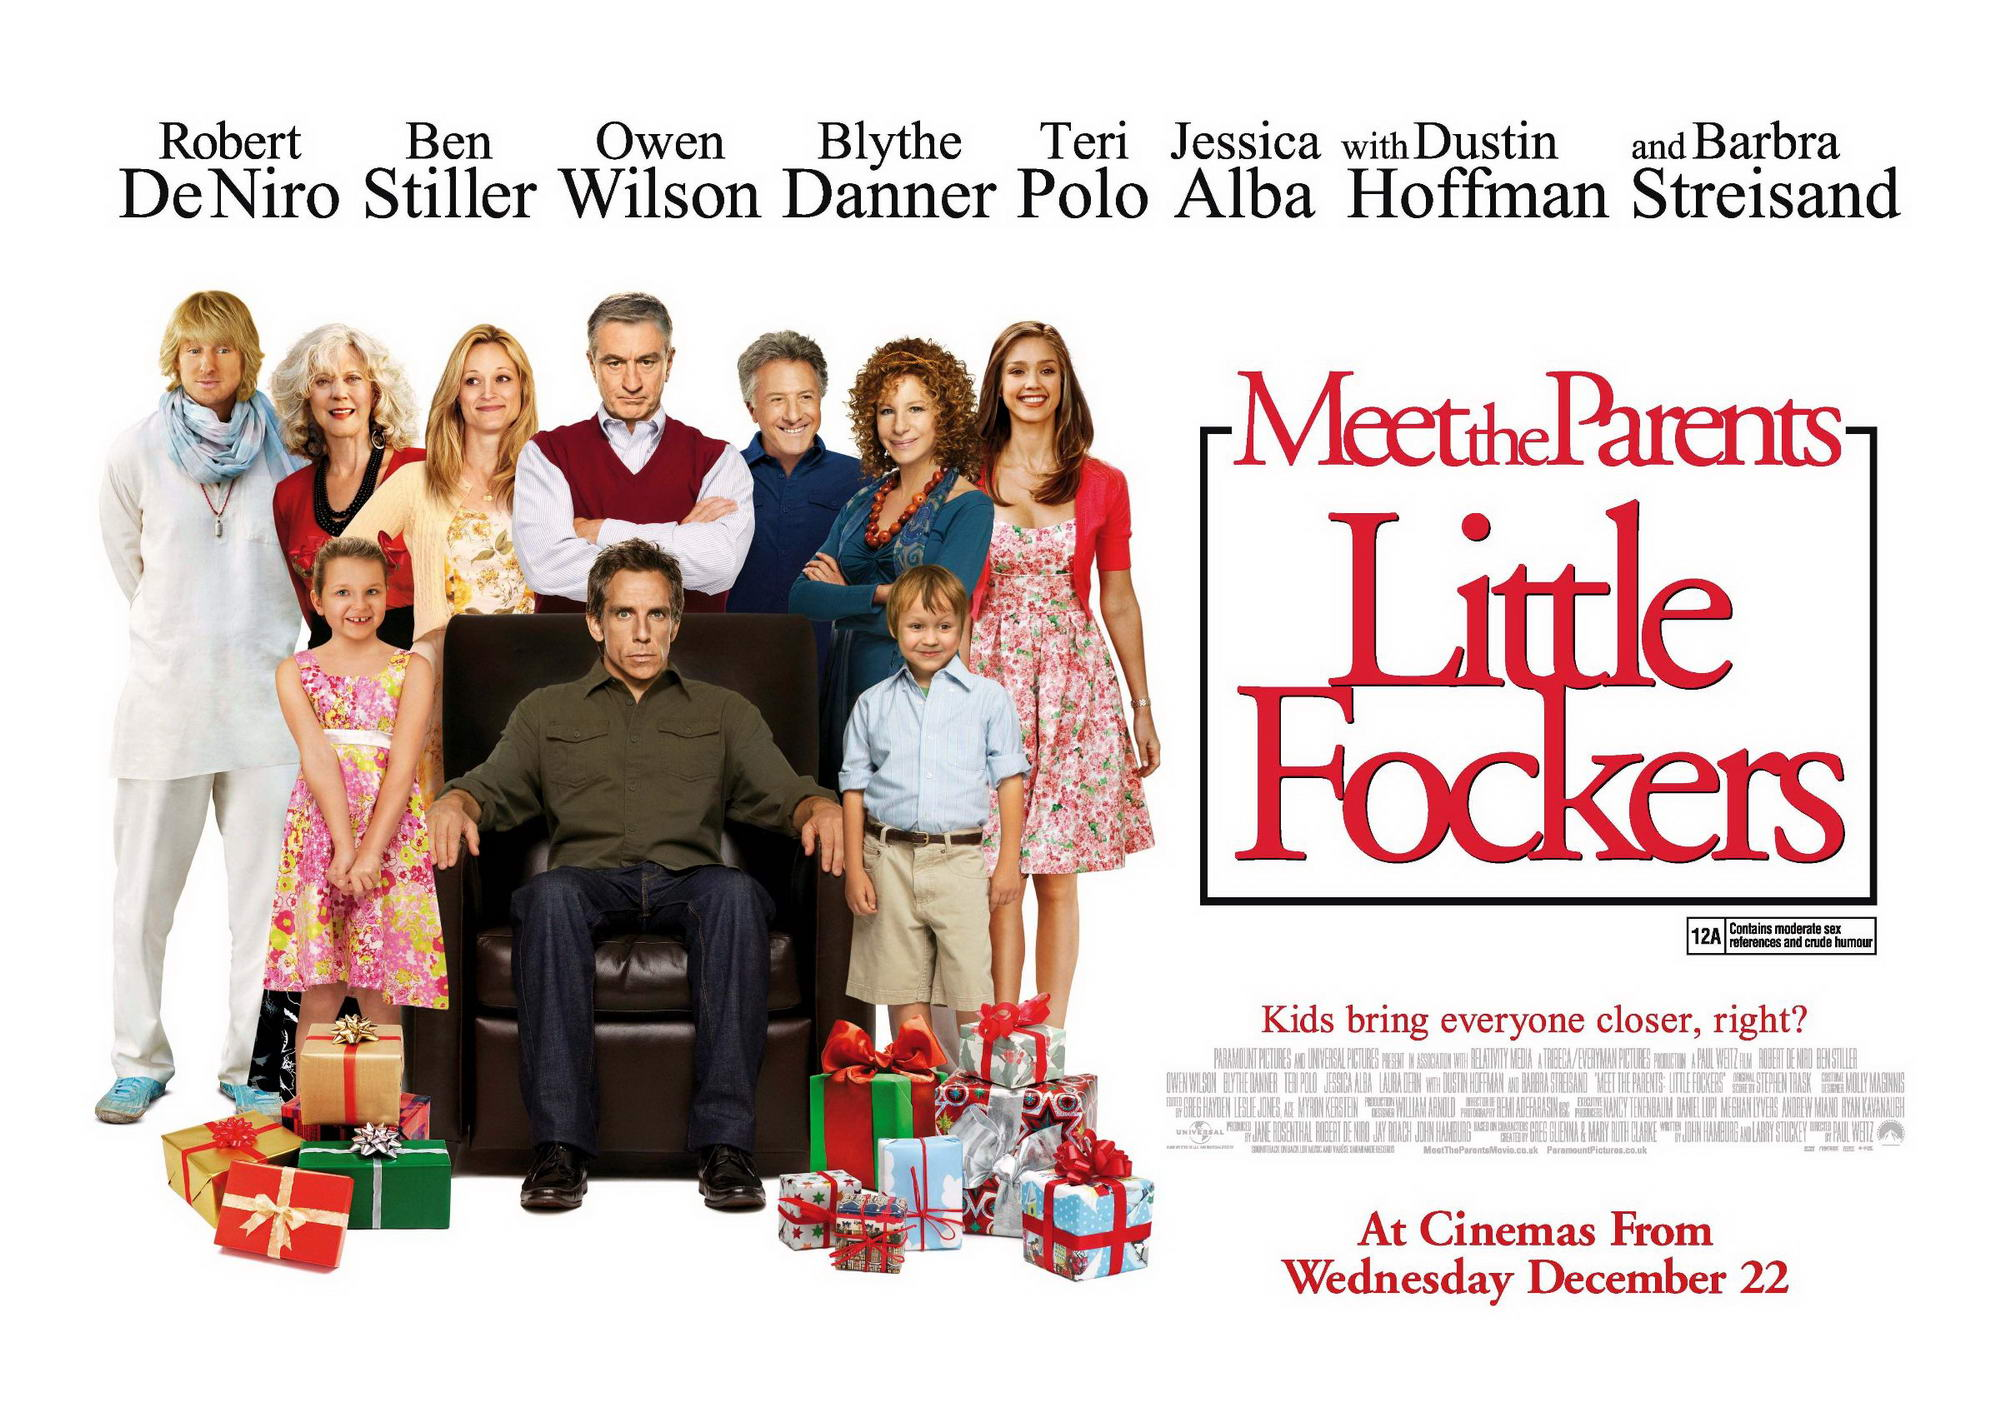 Littlefockers Net The Fockers Are Back And Funnier Than Ever